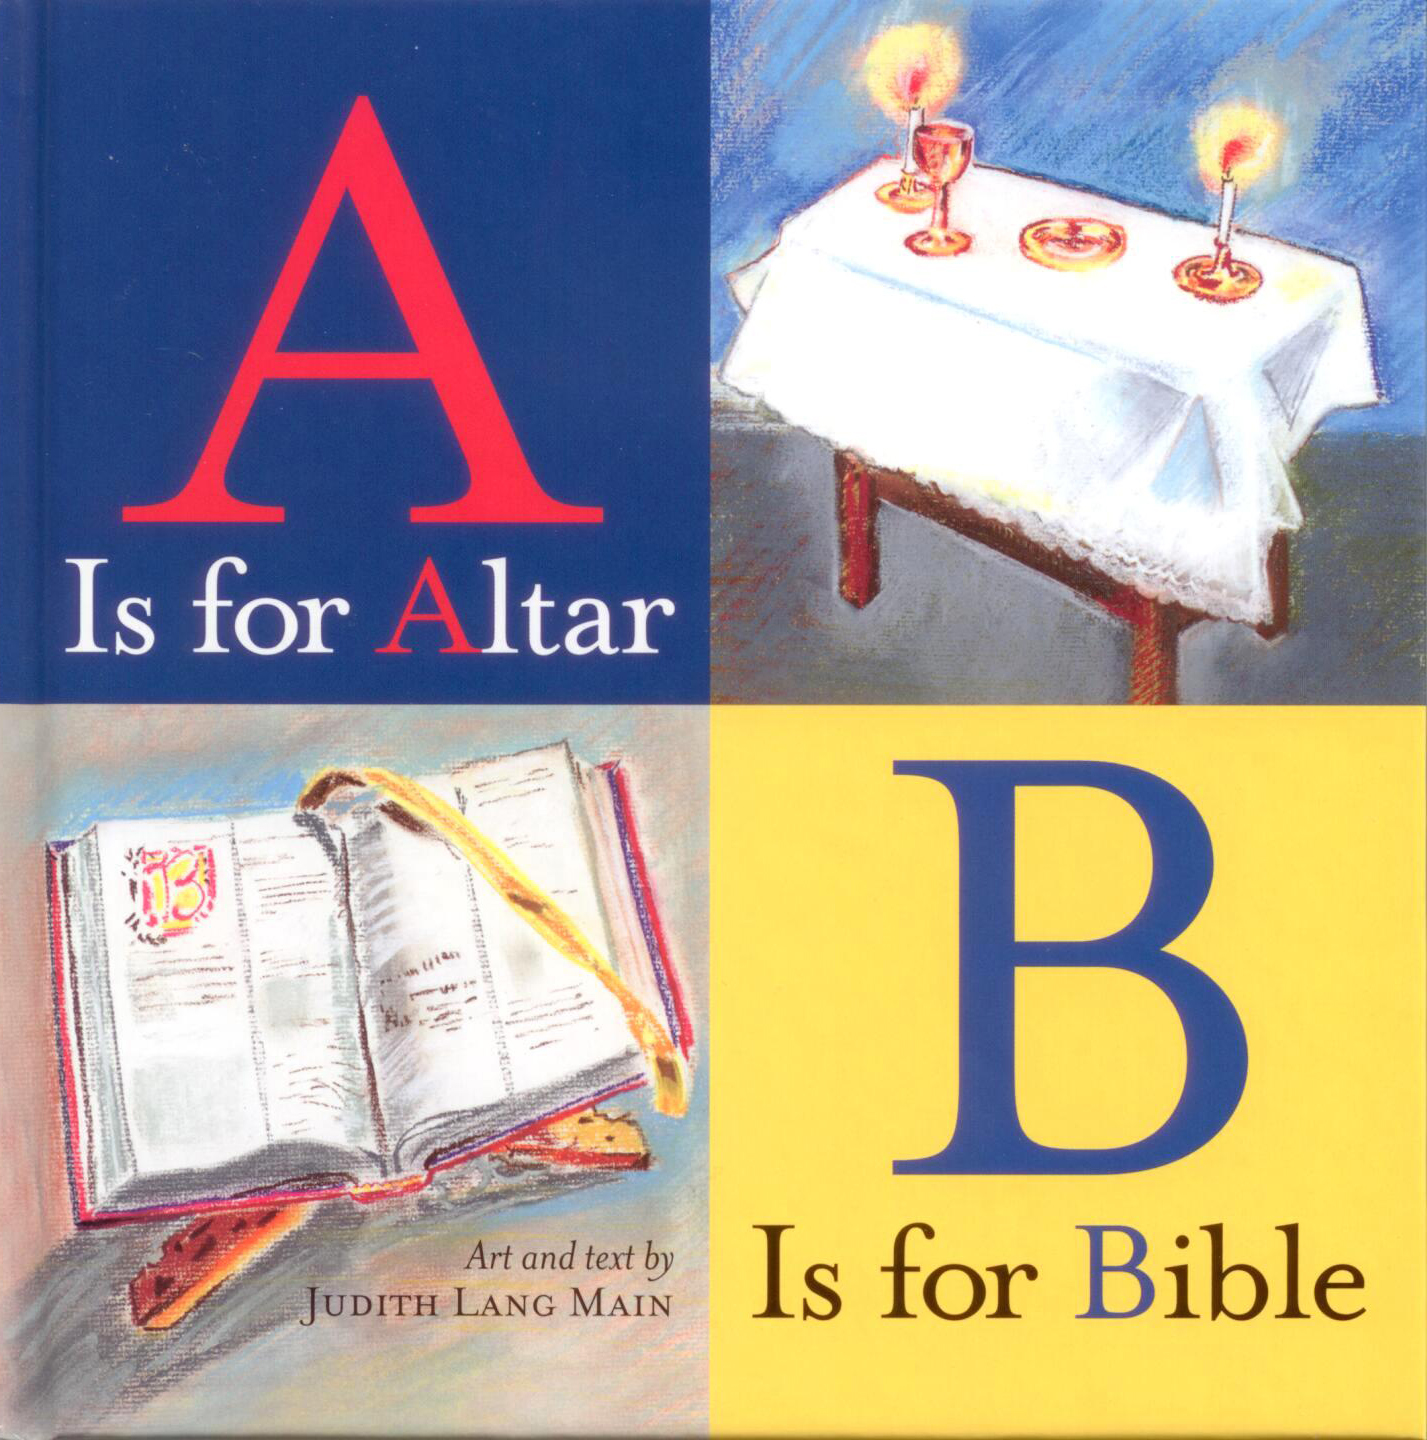 A Is for Altar B Is for Bible ByJudith Lang Main